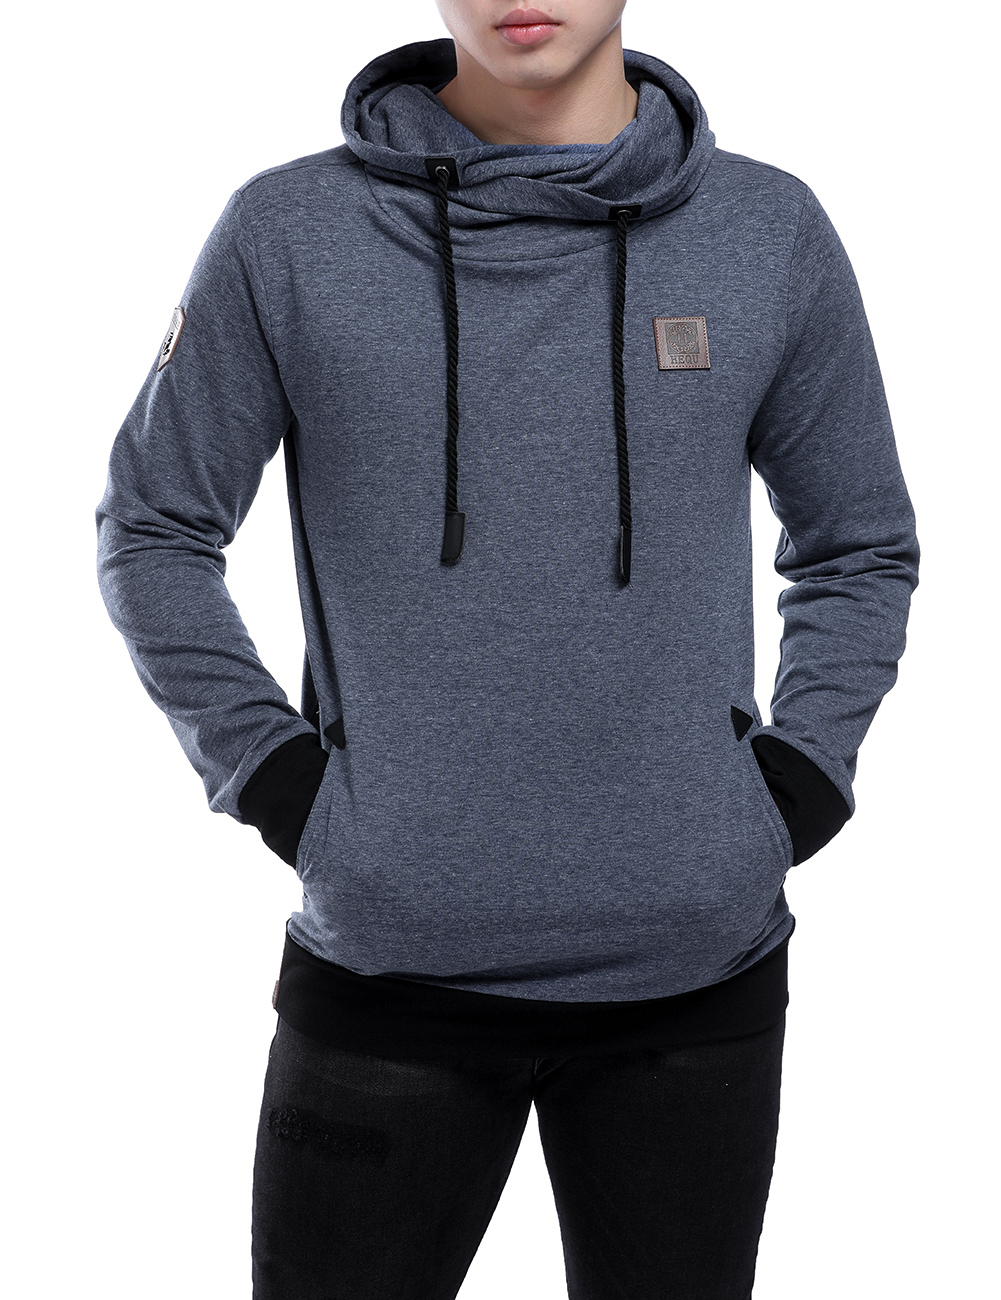 NEW 2018 Fashion Hip Hop Men Hoodies Brand casual Men hooded Casual Solid color Hoodies Sweatshirt Tops Male Pullovers 2XL